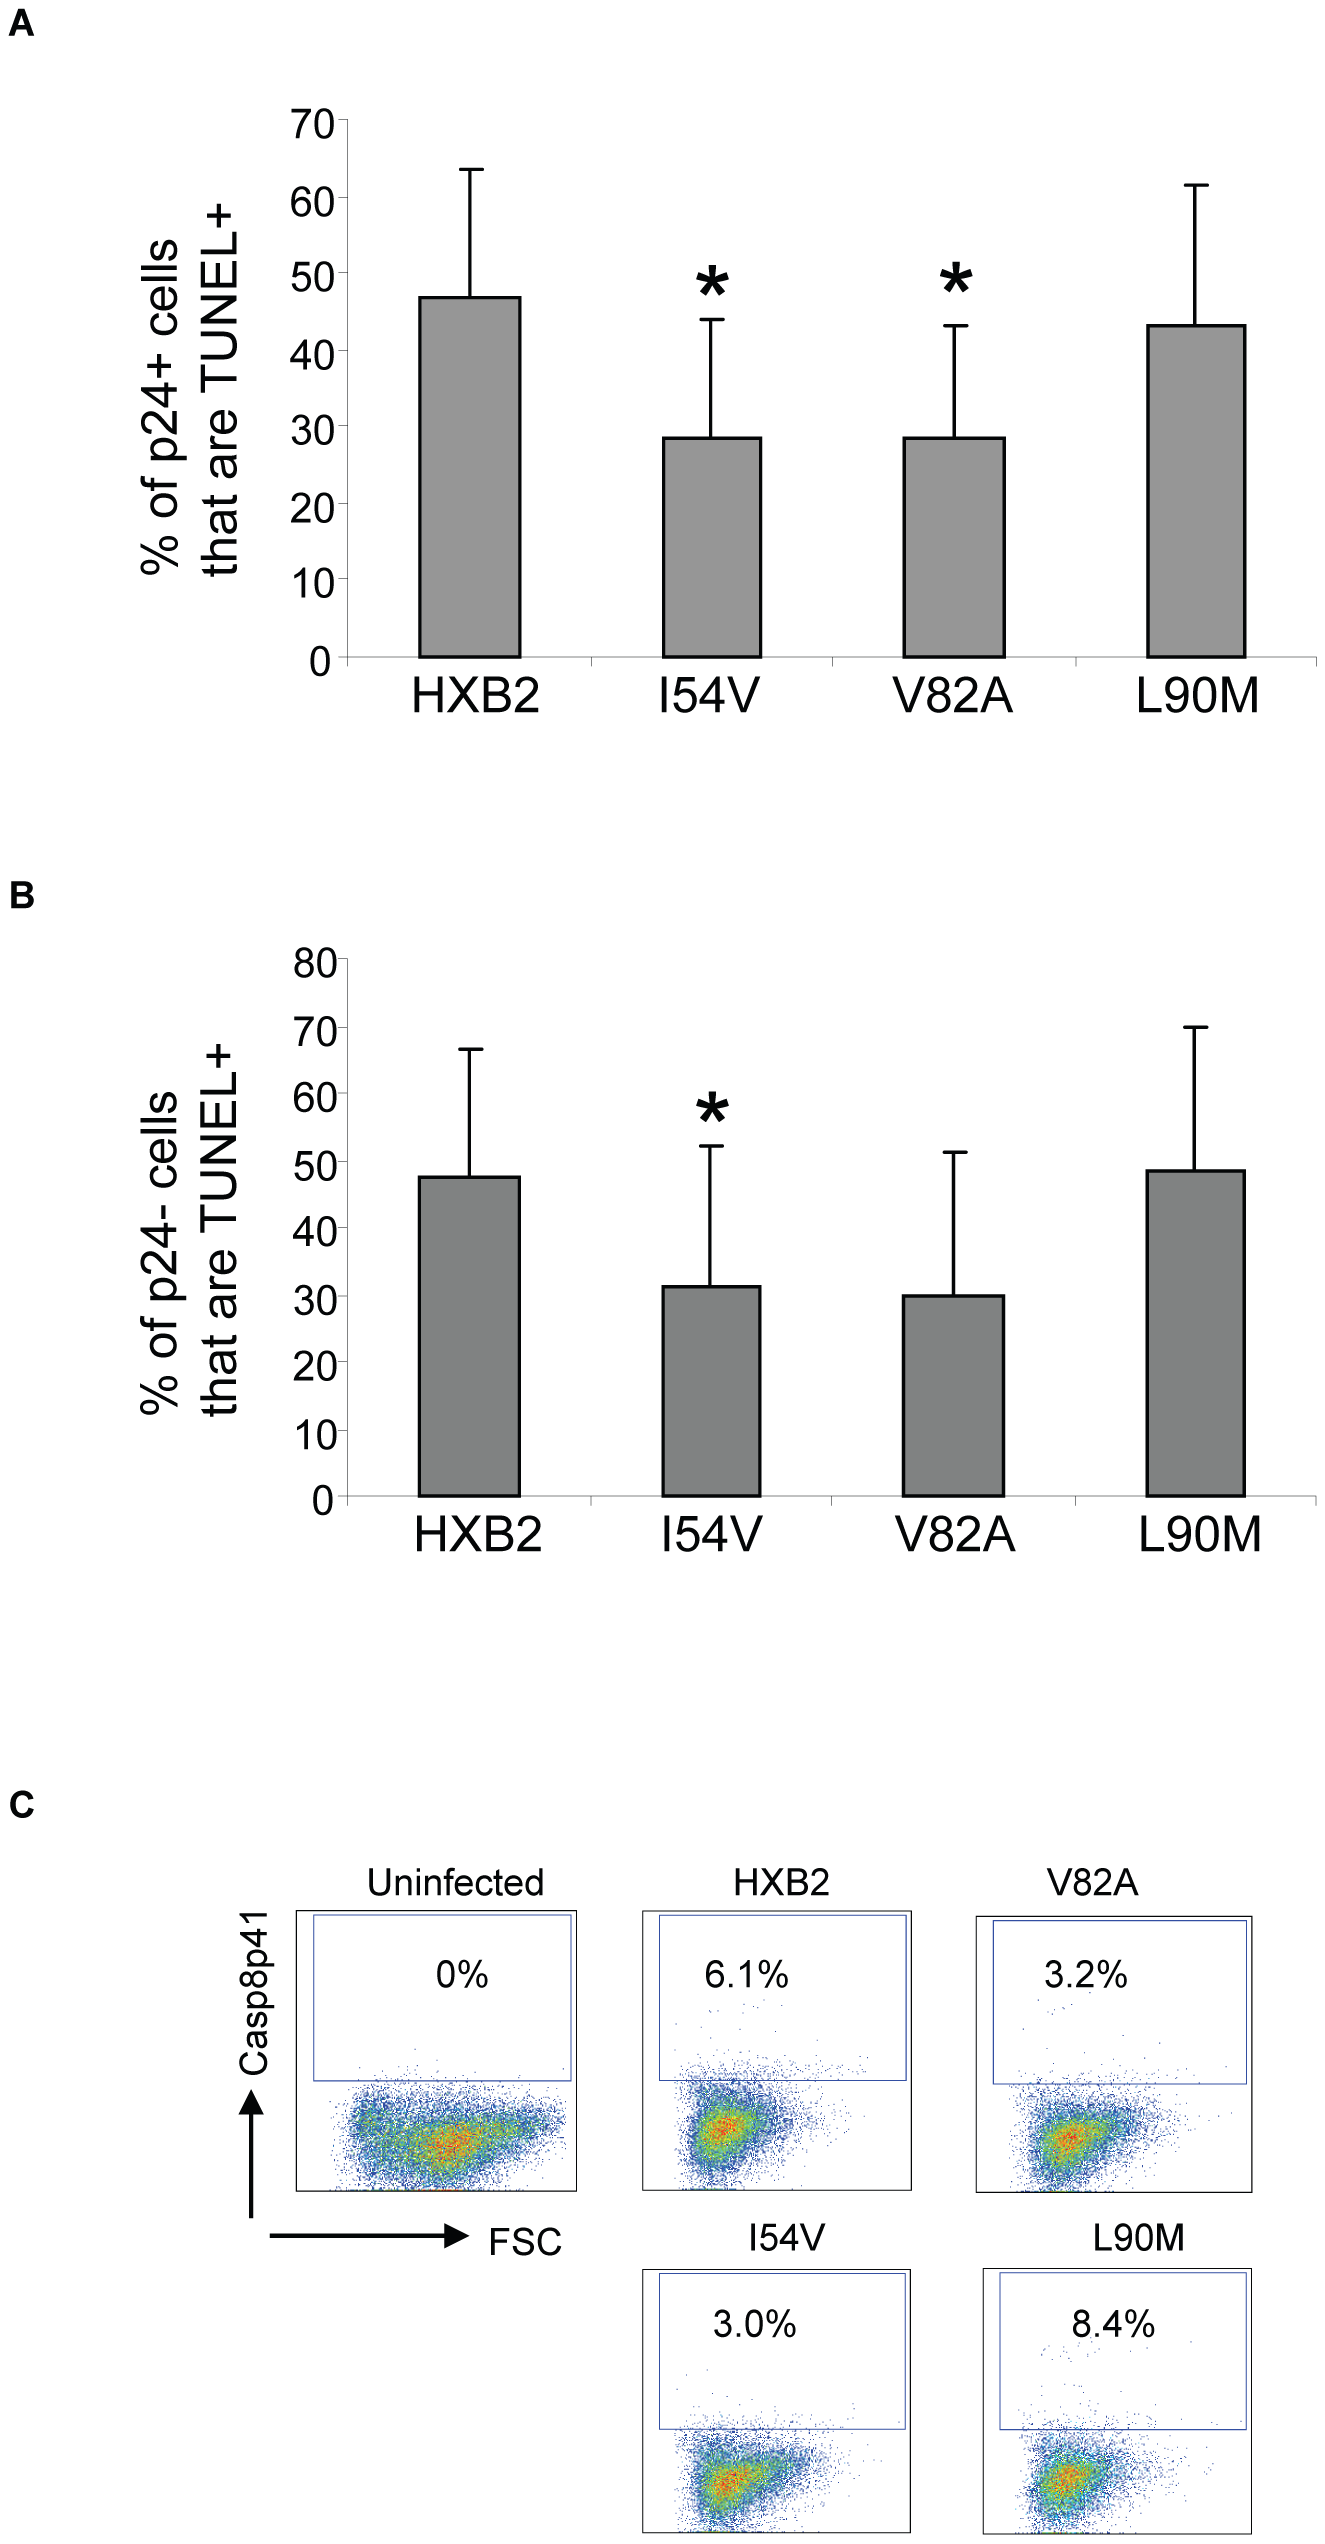 HXB2 containing Discordance Associated Mutations (DAMs) are associated with reduced generation of TUNEL positivity and reduced Casp8p41 production.